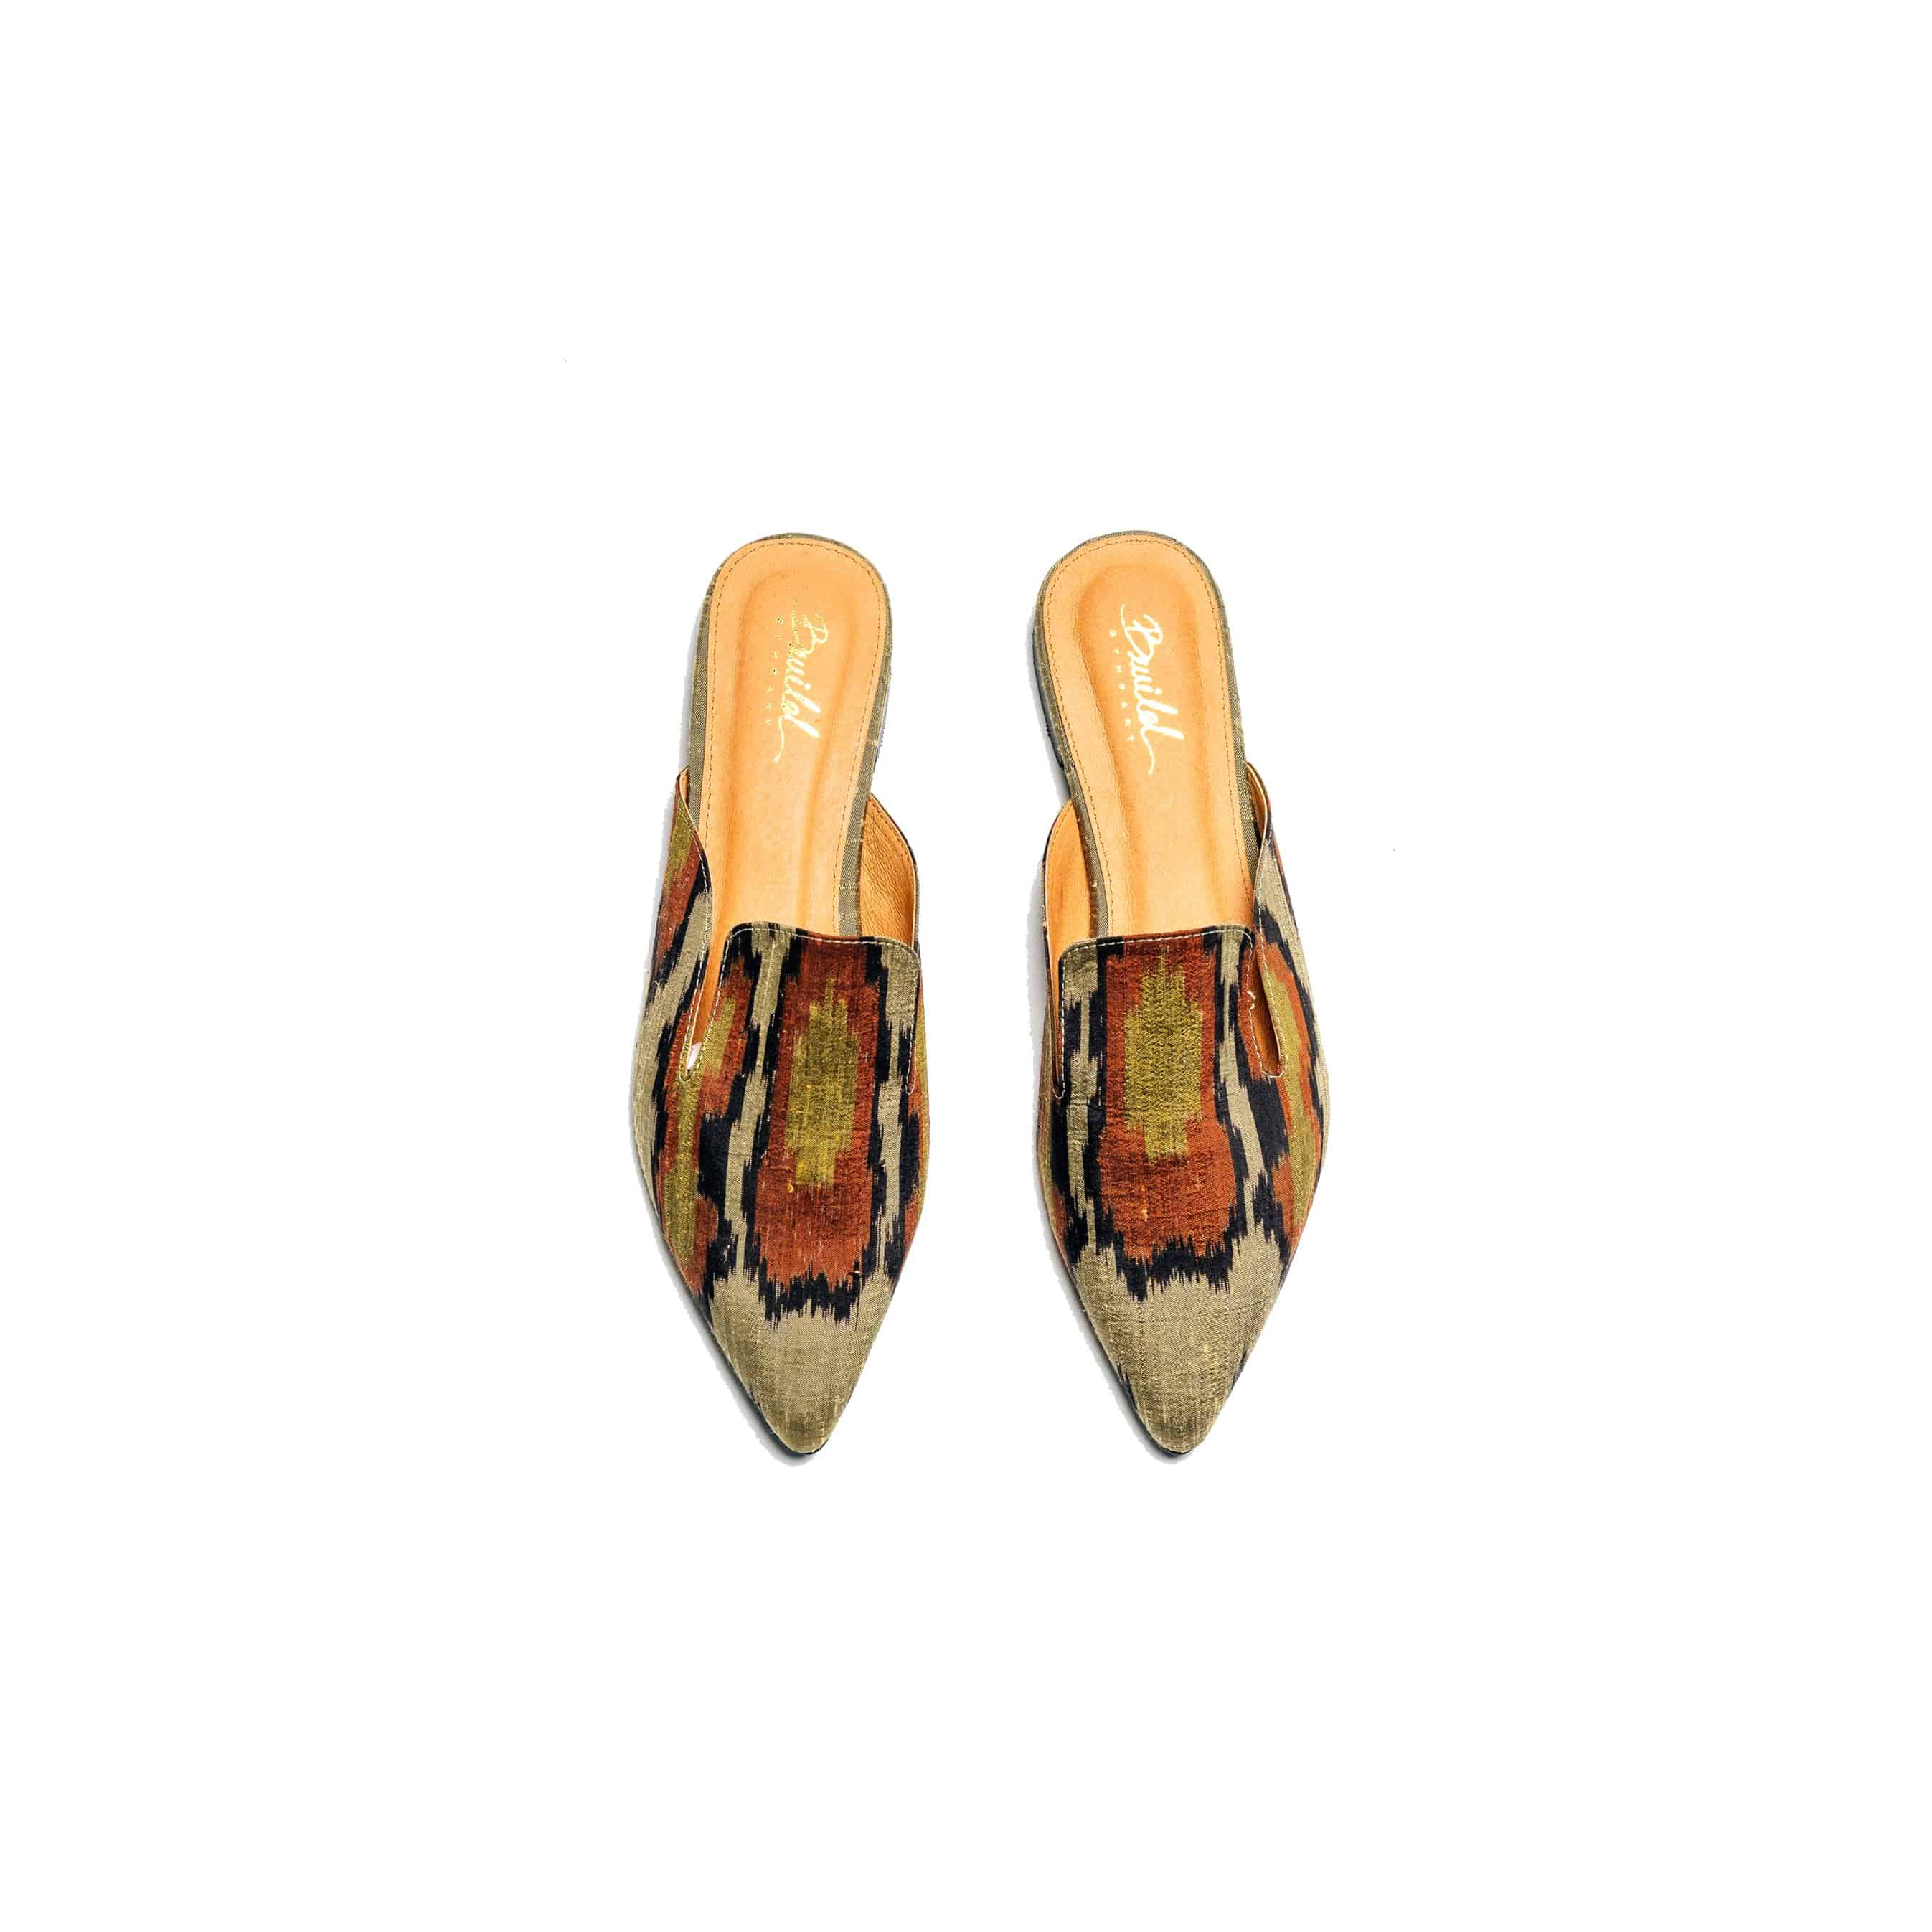 Wild in the city Mule Slippers - Orange Dream - BWILD byHeart